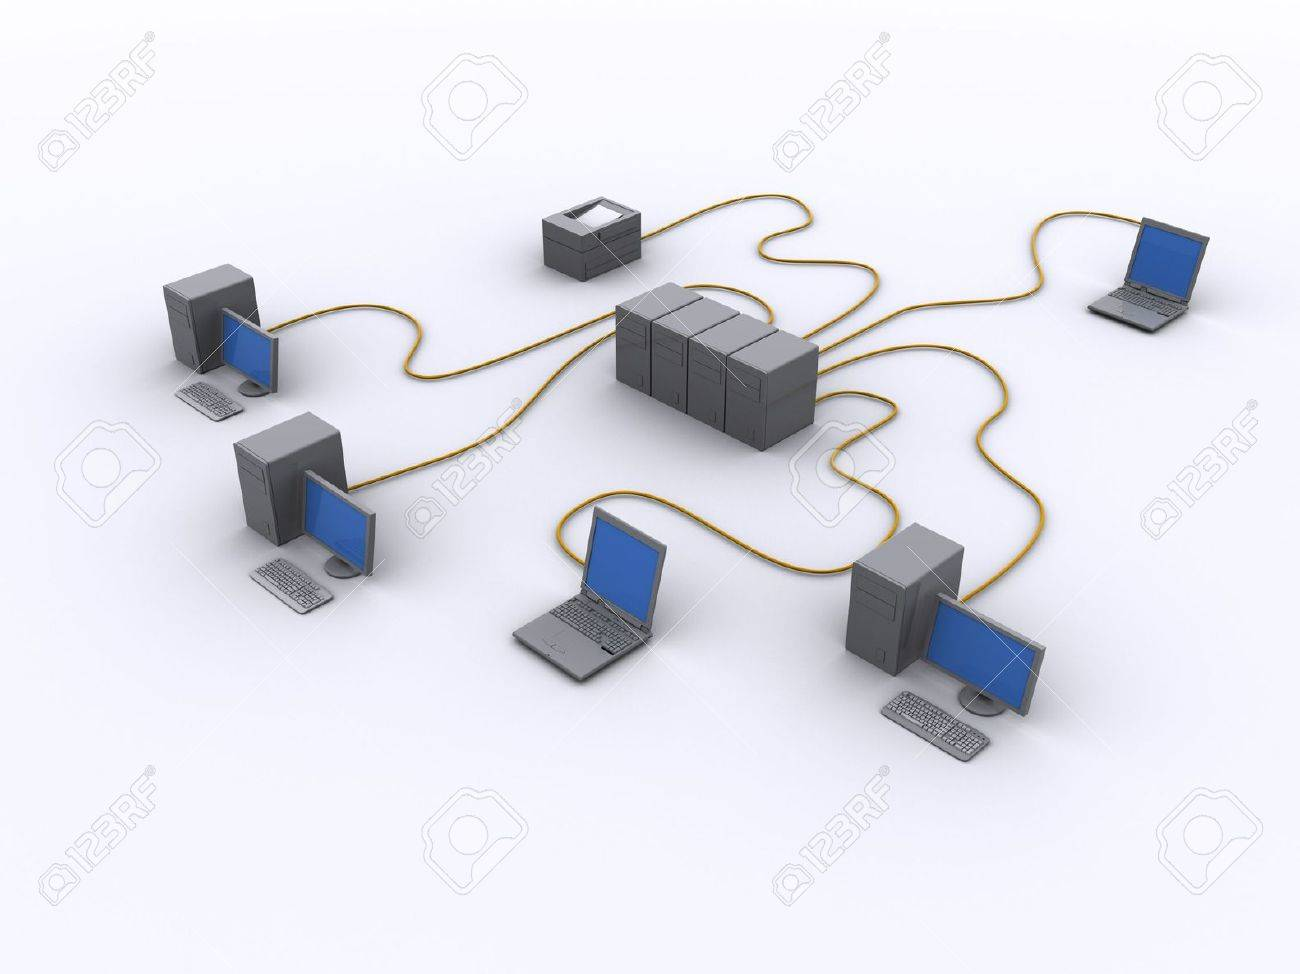 A Picture Of A Wired Network Diagram Stock Photo Picture And